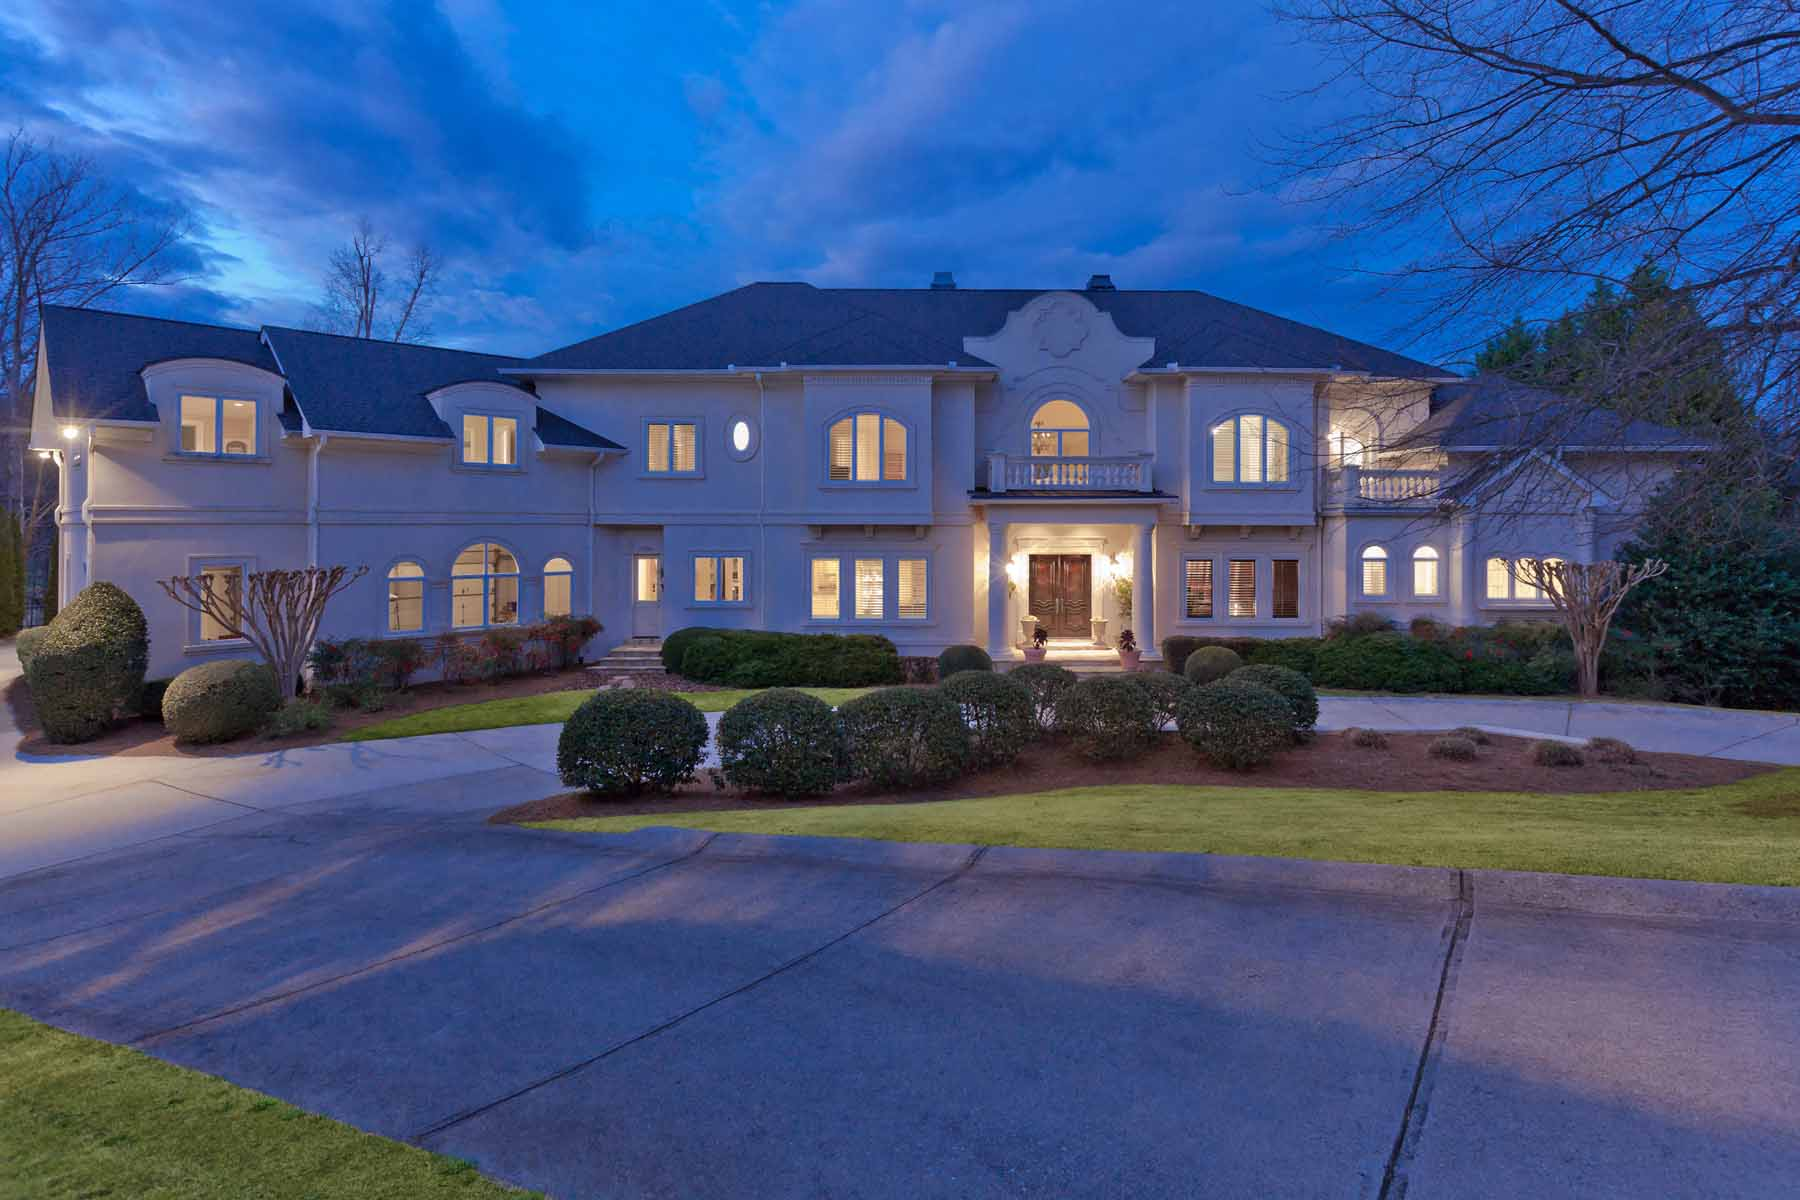 단독 가정 주택 용 매매 에 Magnificent Country Club Estate Home on Sprawling Property 1235 Stuart Ridge Alpharetta, 조지아 30022 미국